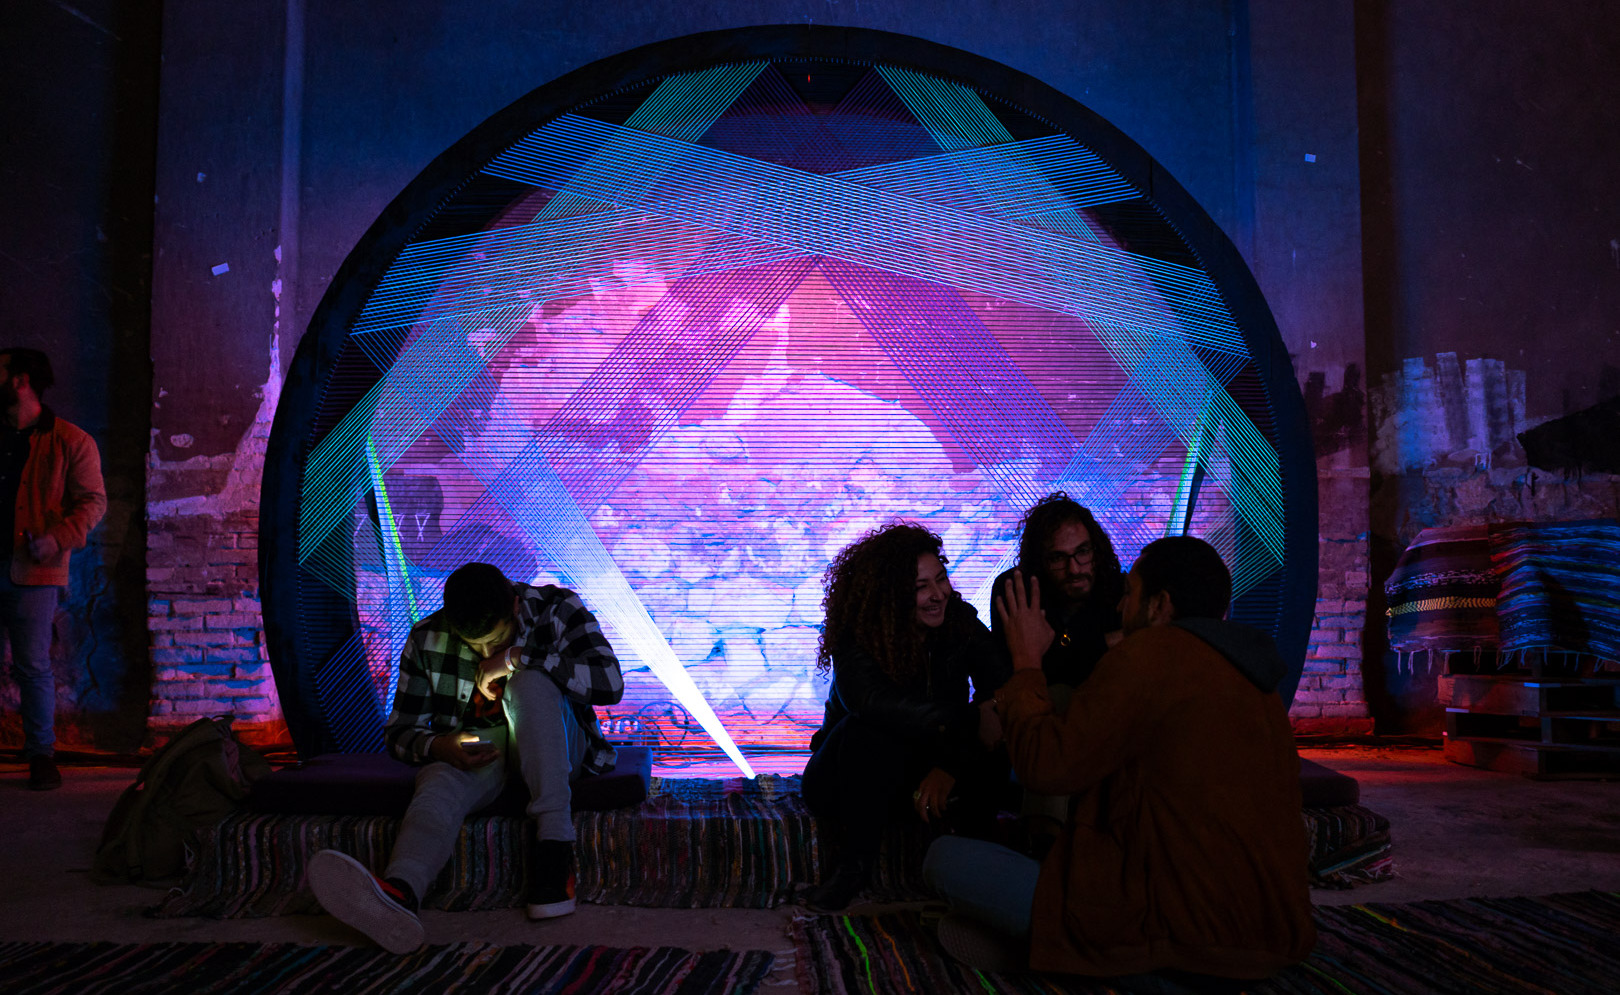 ODD Threads: Taking Over Egypt's Festivals One String Art Installation at a Time